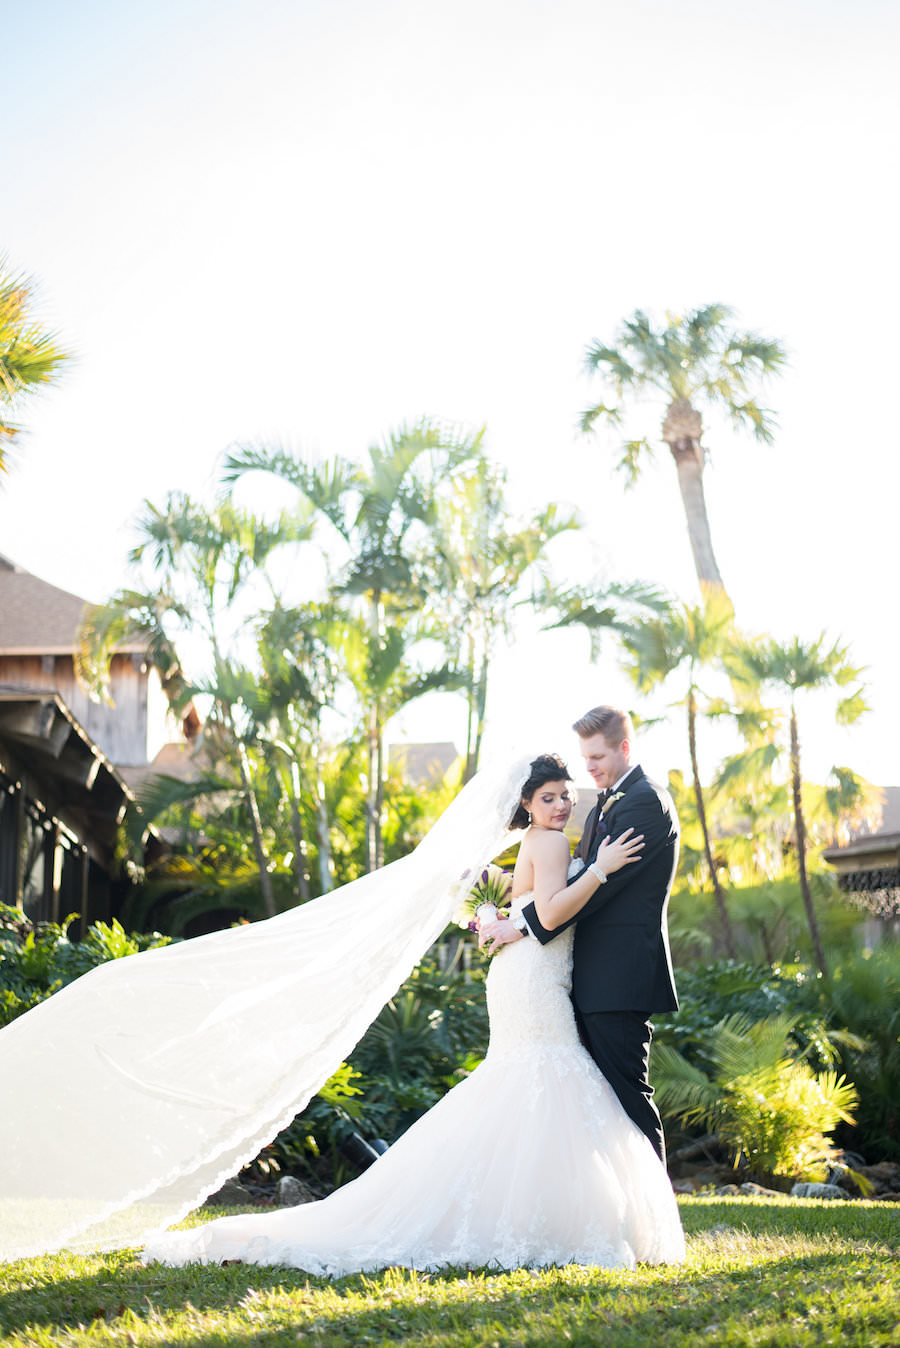 Outdoor, Tampa Bride and Groom Wedding Portrait with Flowing Chapel Veil   Tampa Wedding Photographers Caroline and Evan Photography